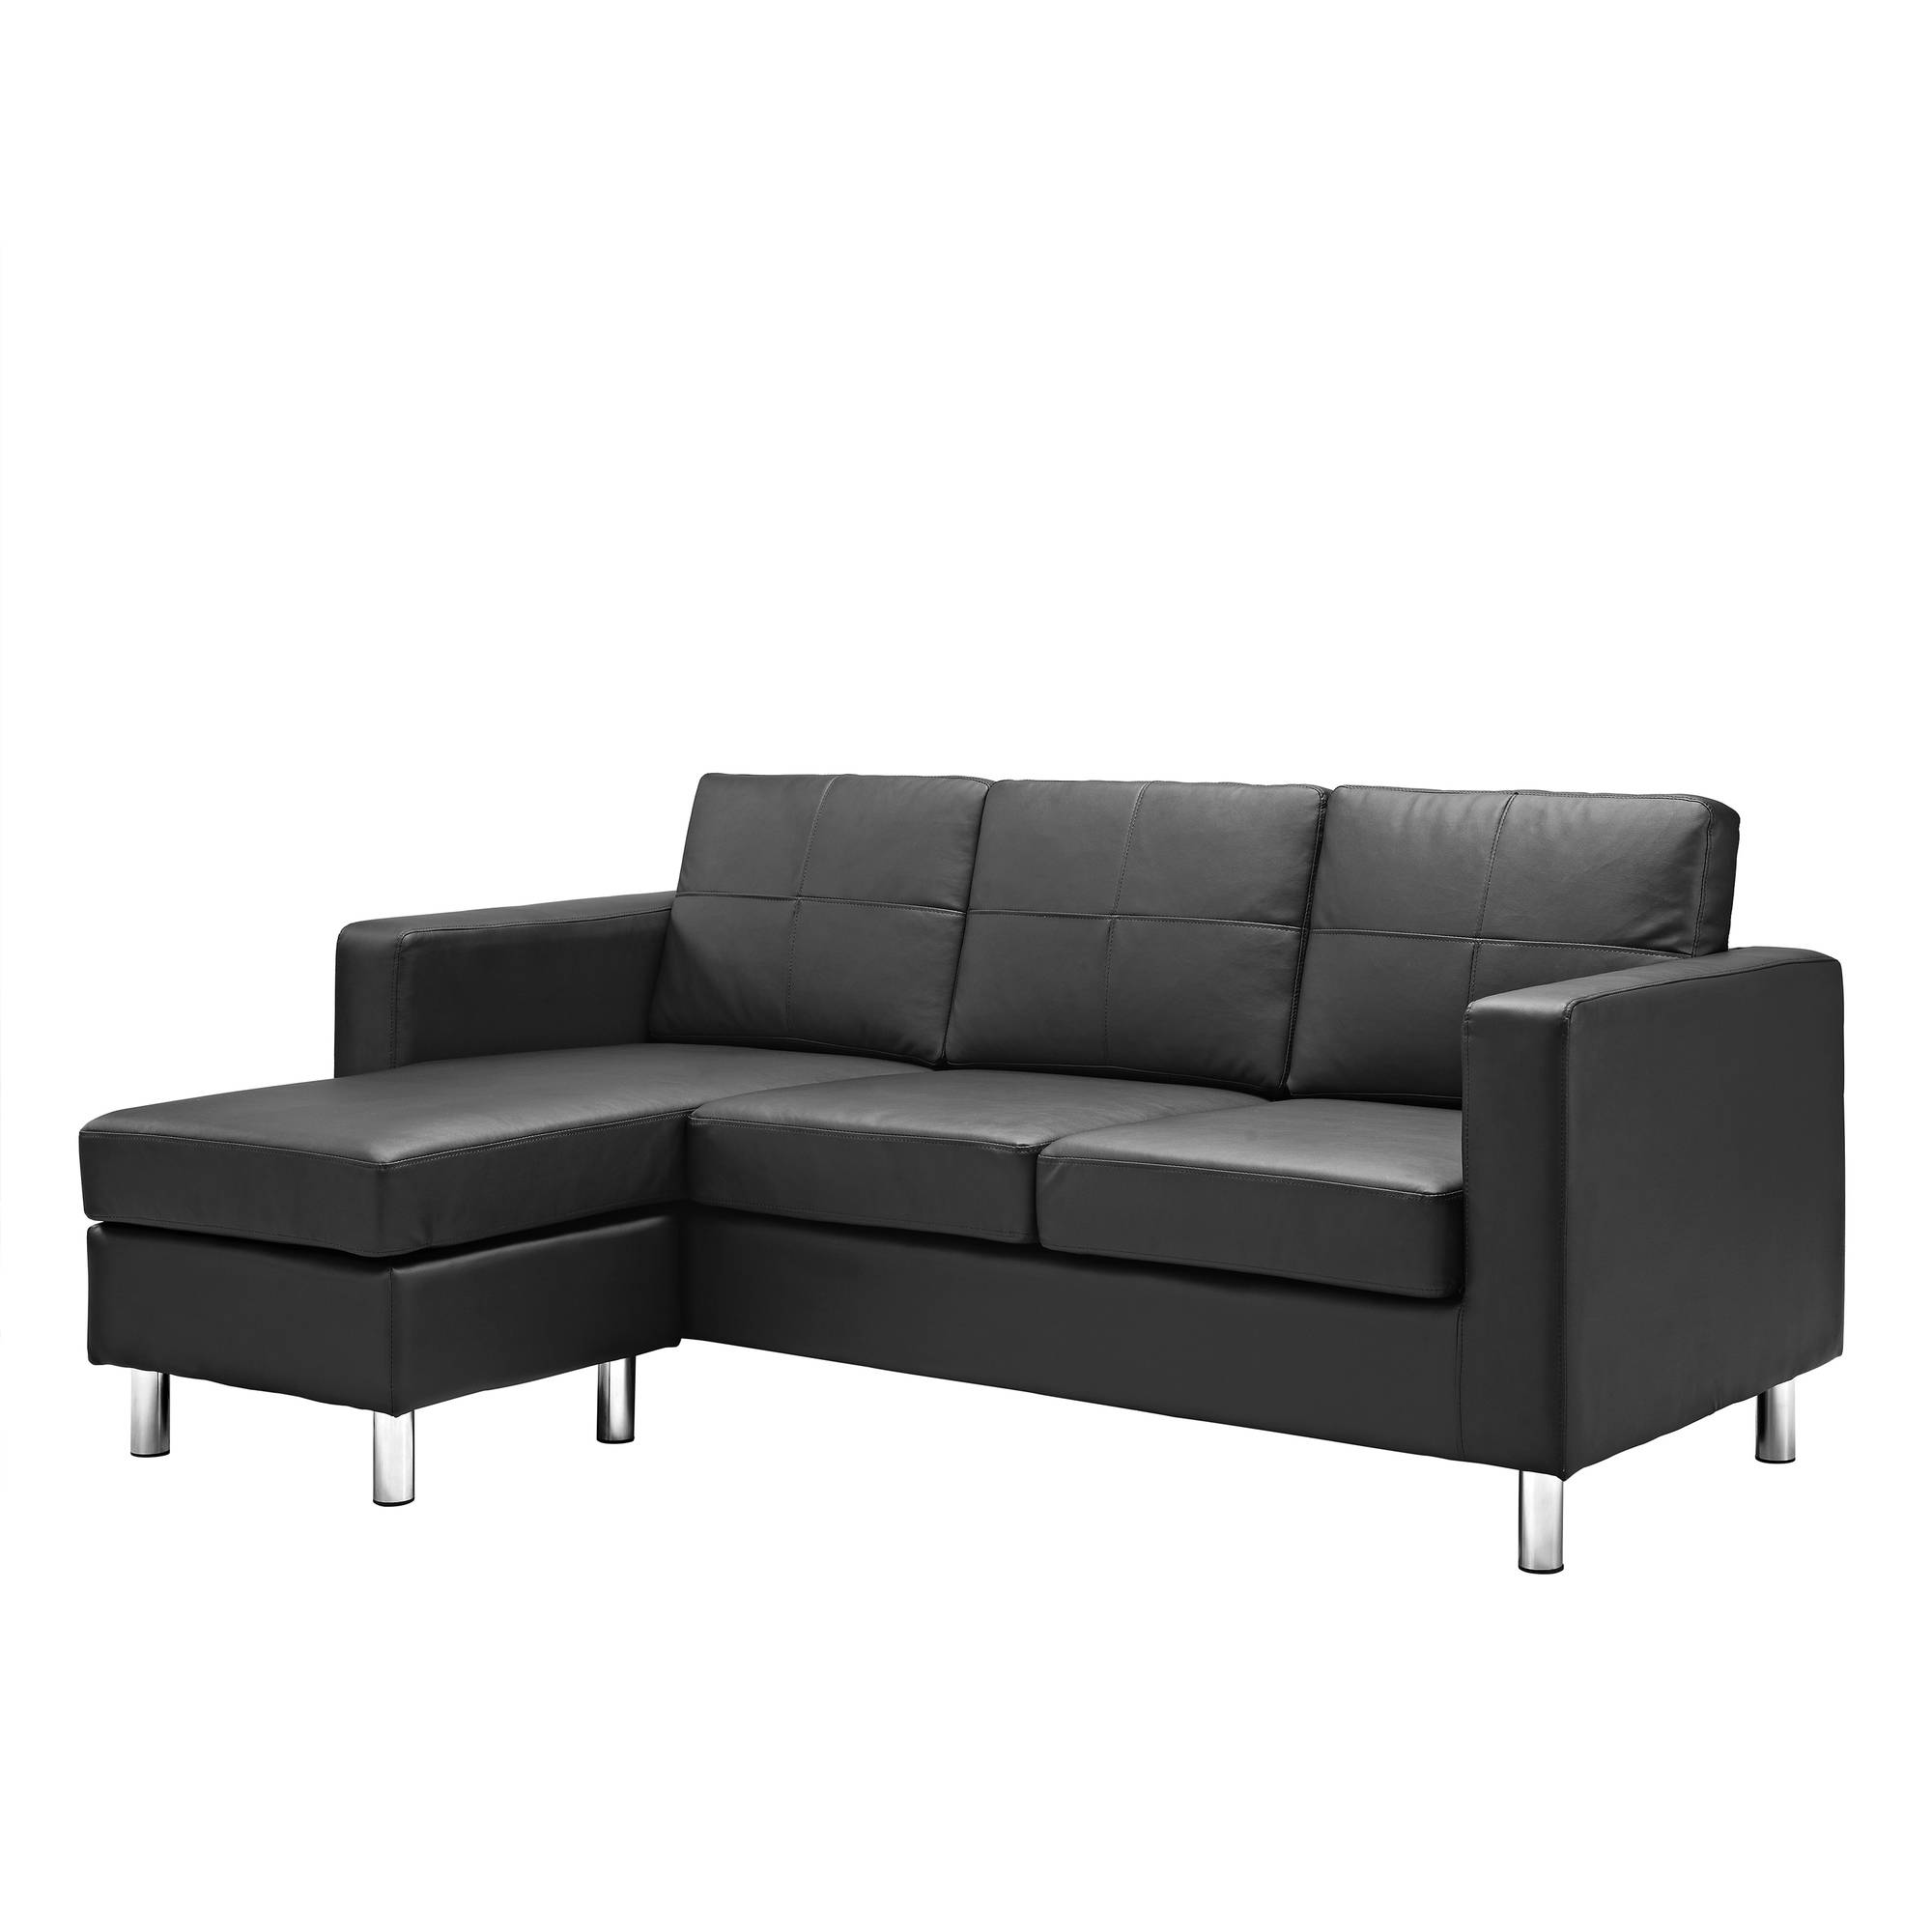 Small Faux Leather Sofa Bed: Small Spaces Configurable Sectional Sofa Black Couch